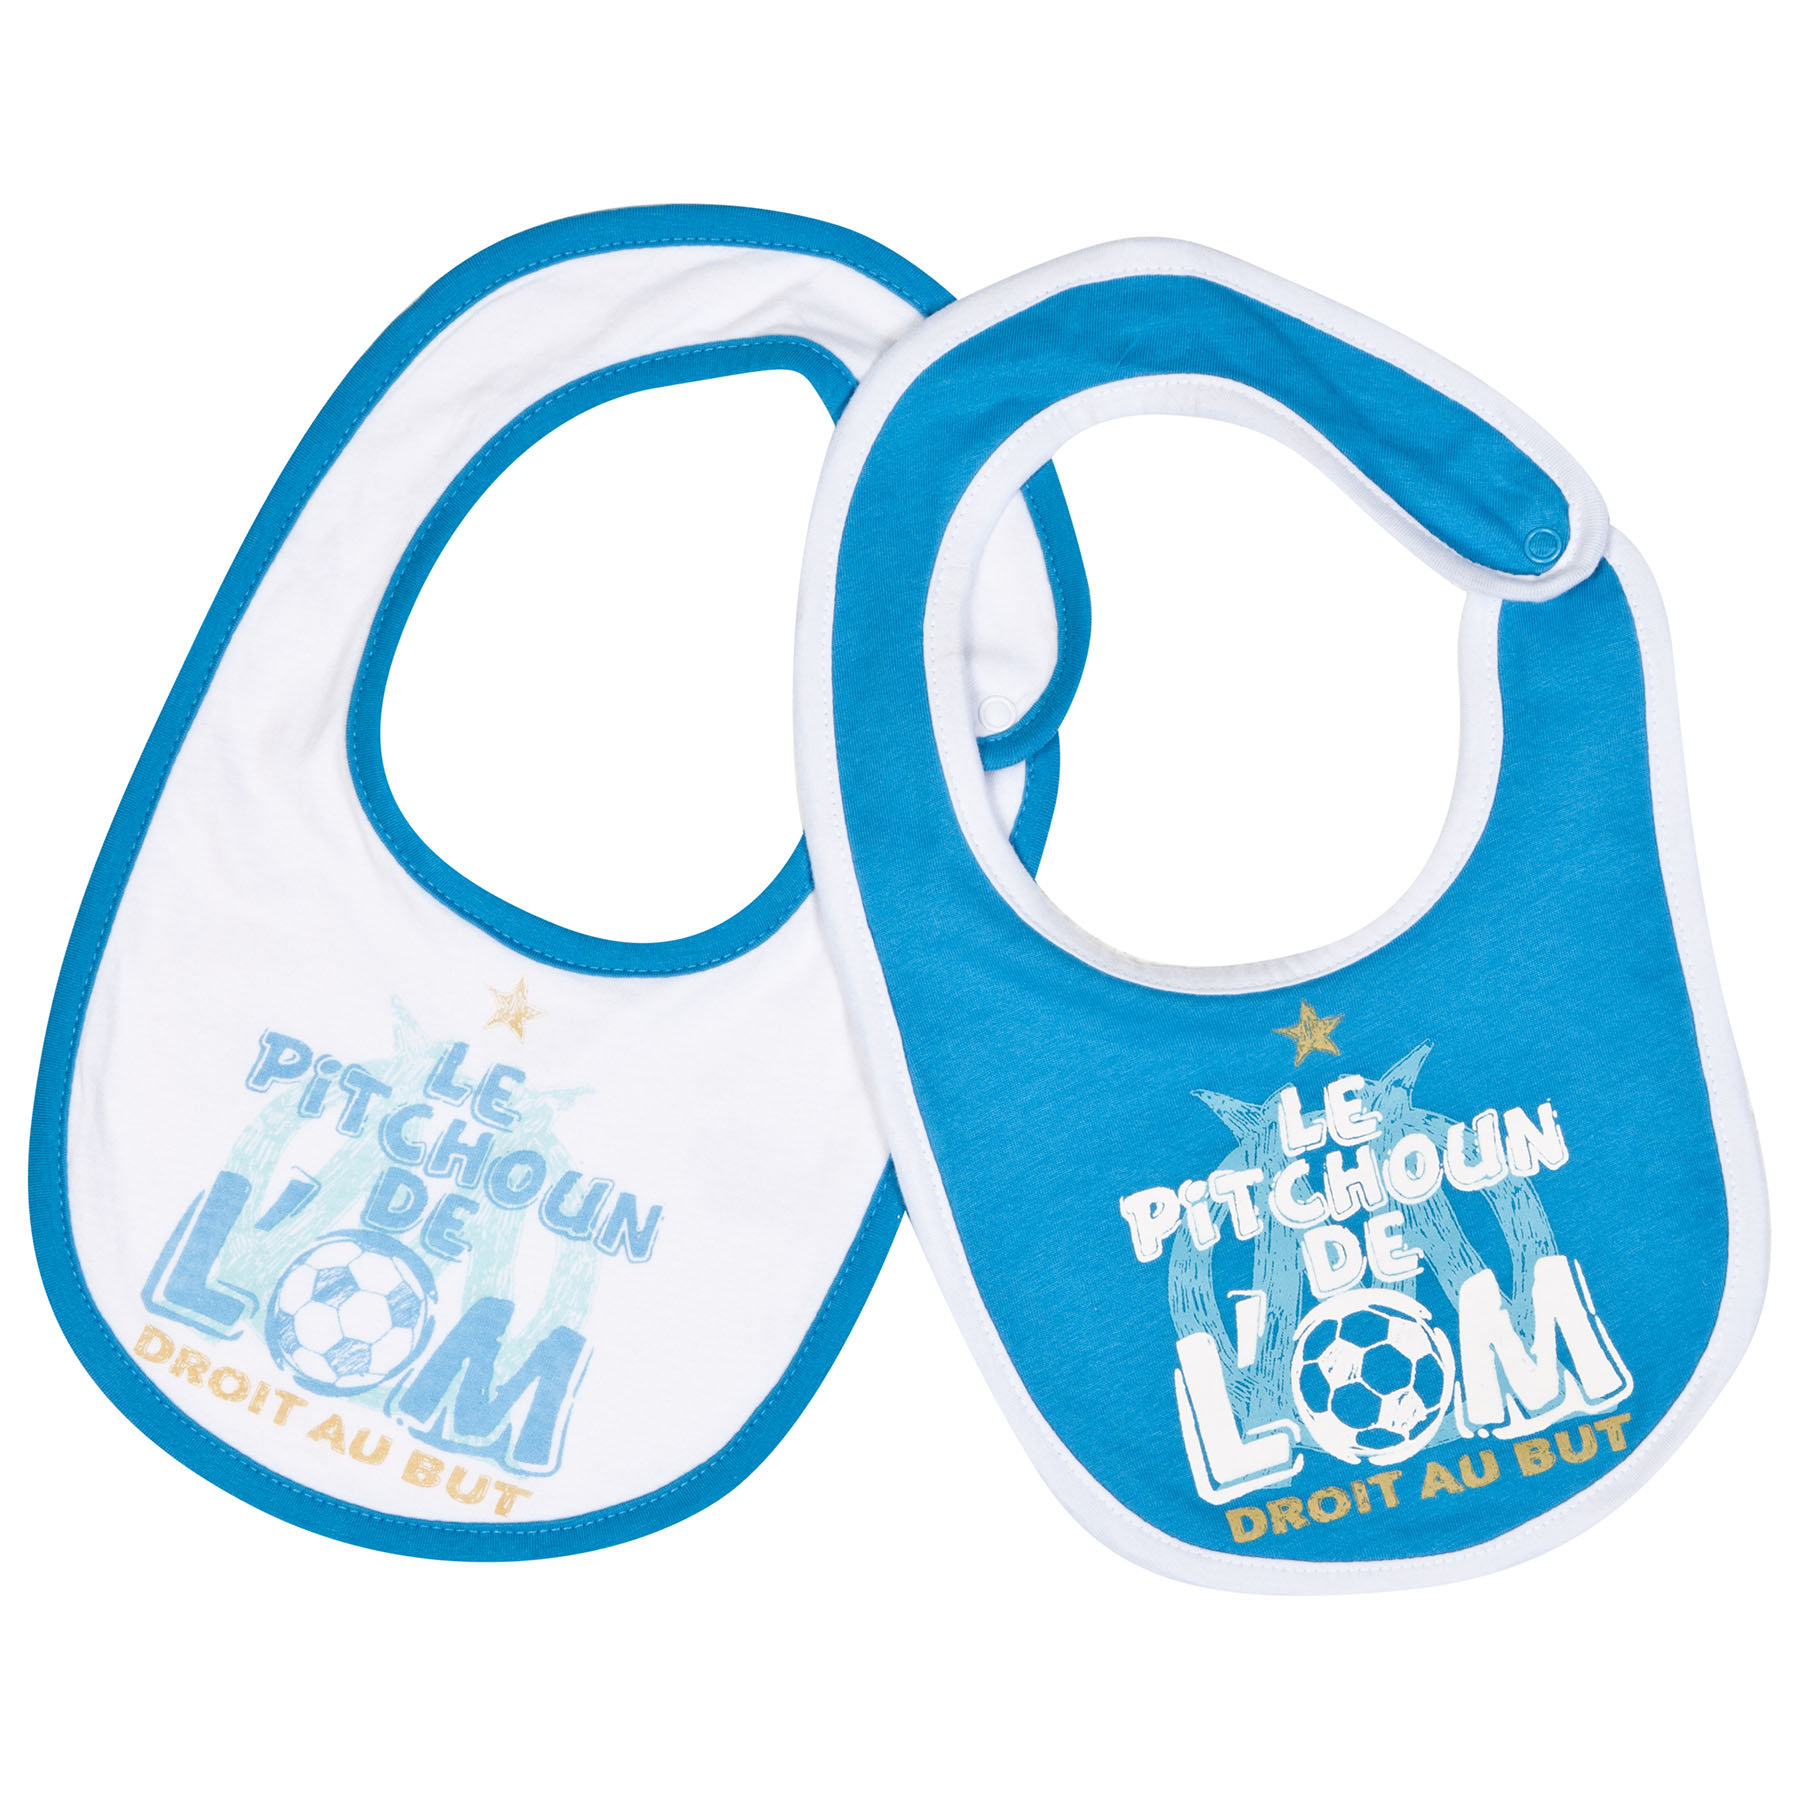 Olympique de Marseille 2 PK Bibs - Blue/White - Baby Boys